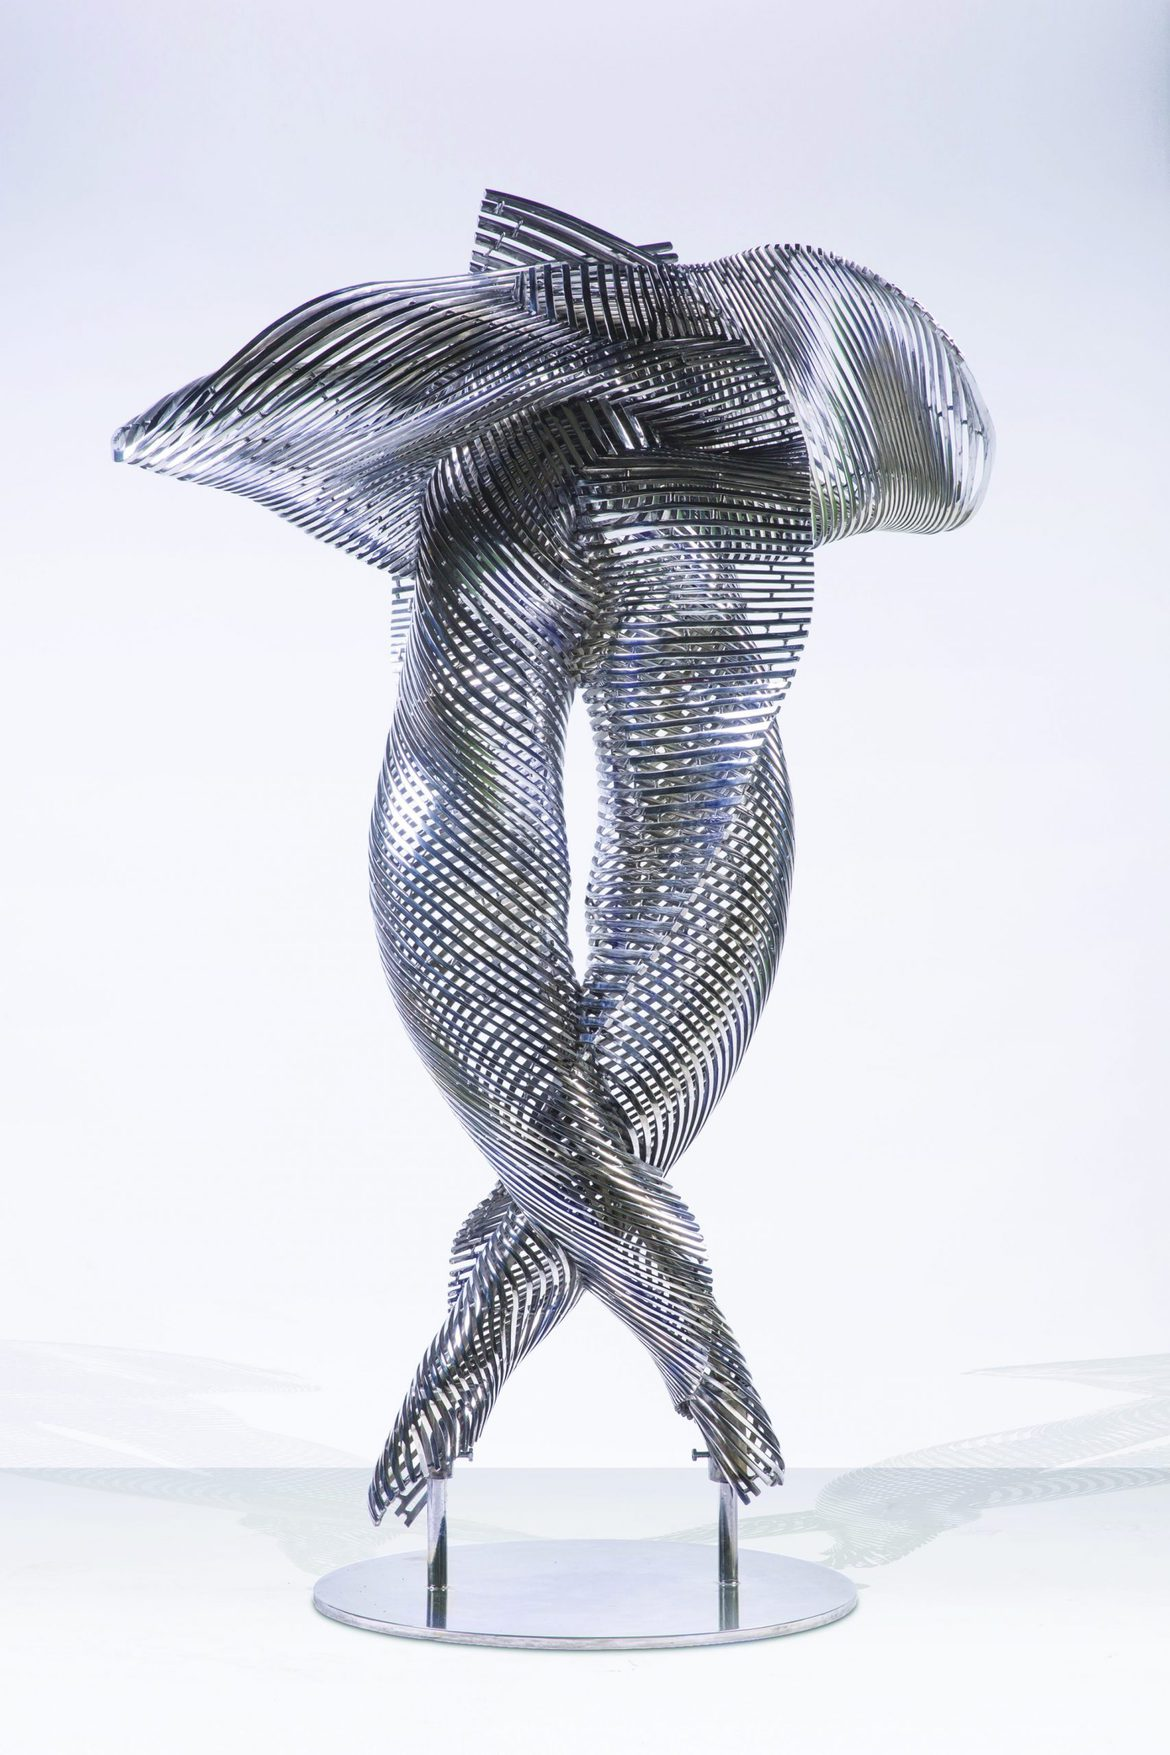 'Embrace', 2018, stainless steel, 160 x 109 x 65 cm, edition 1 of 7 + 1AP